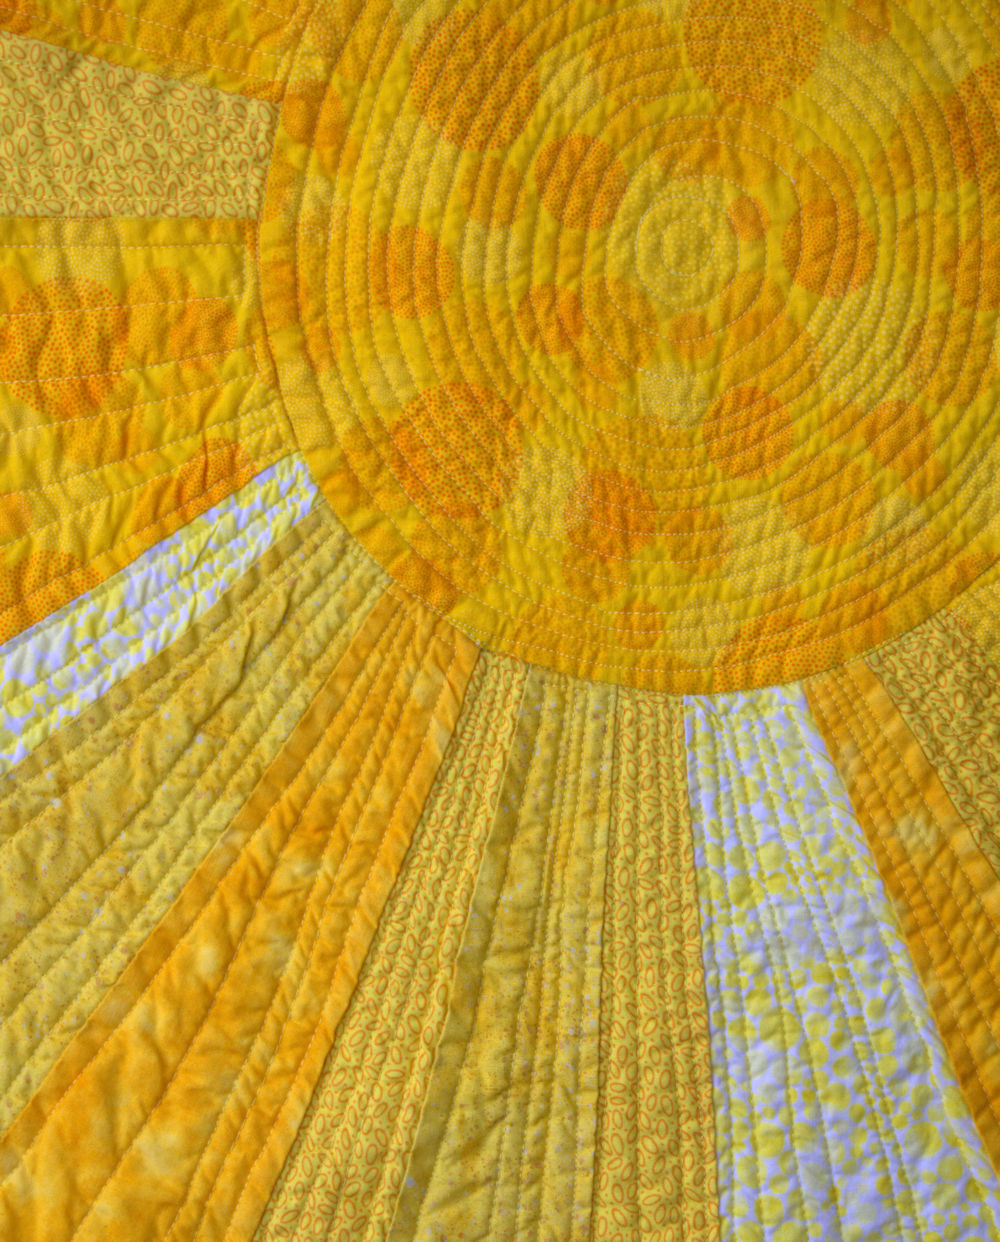 Yellow sun with beams